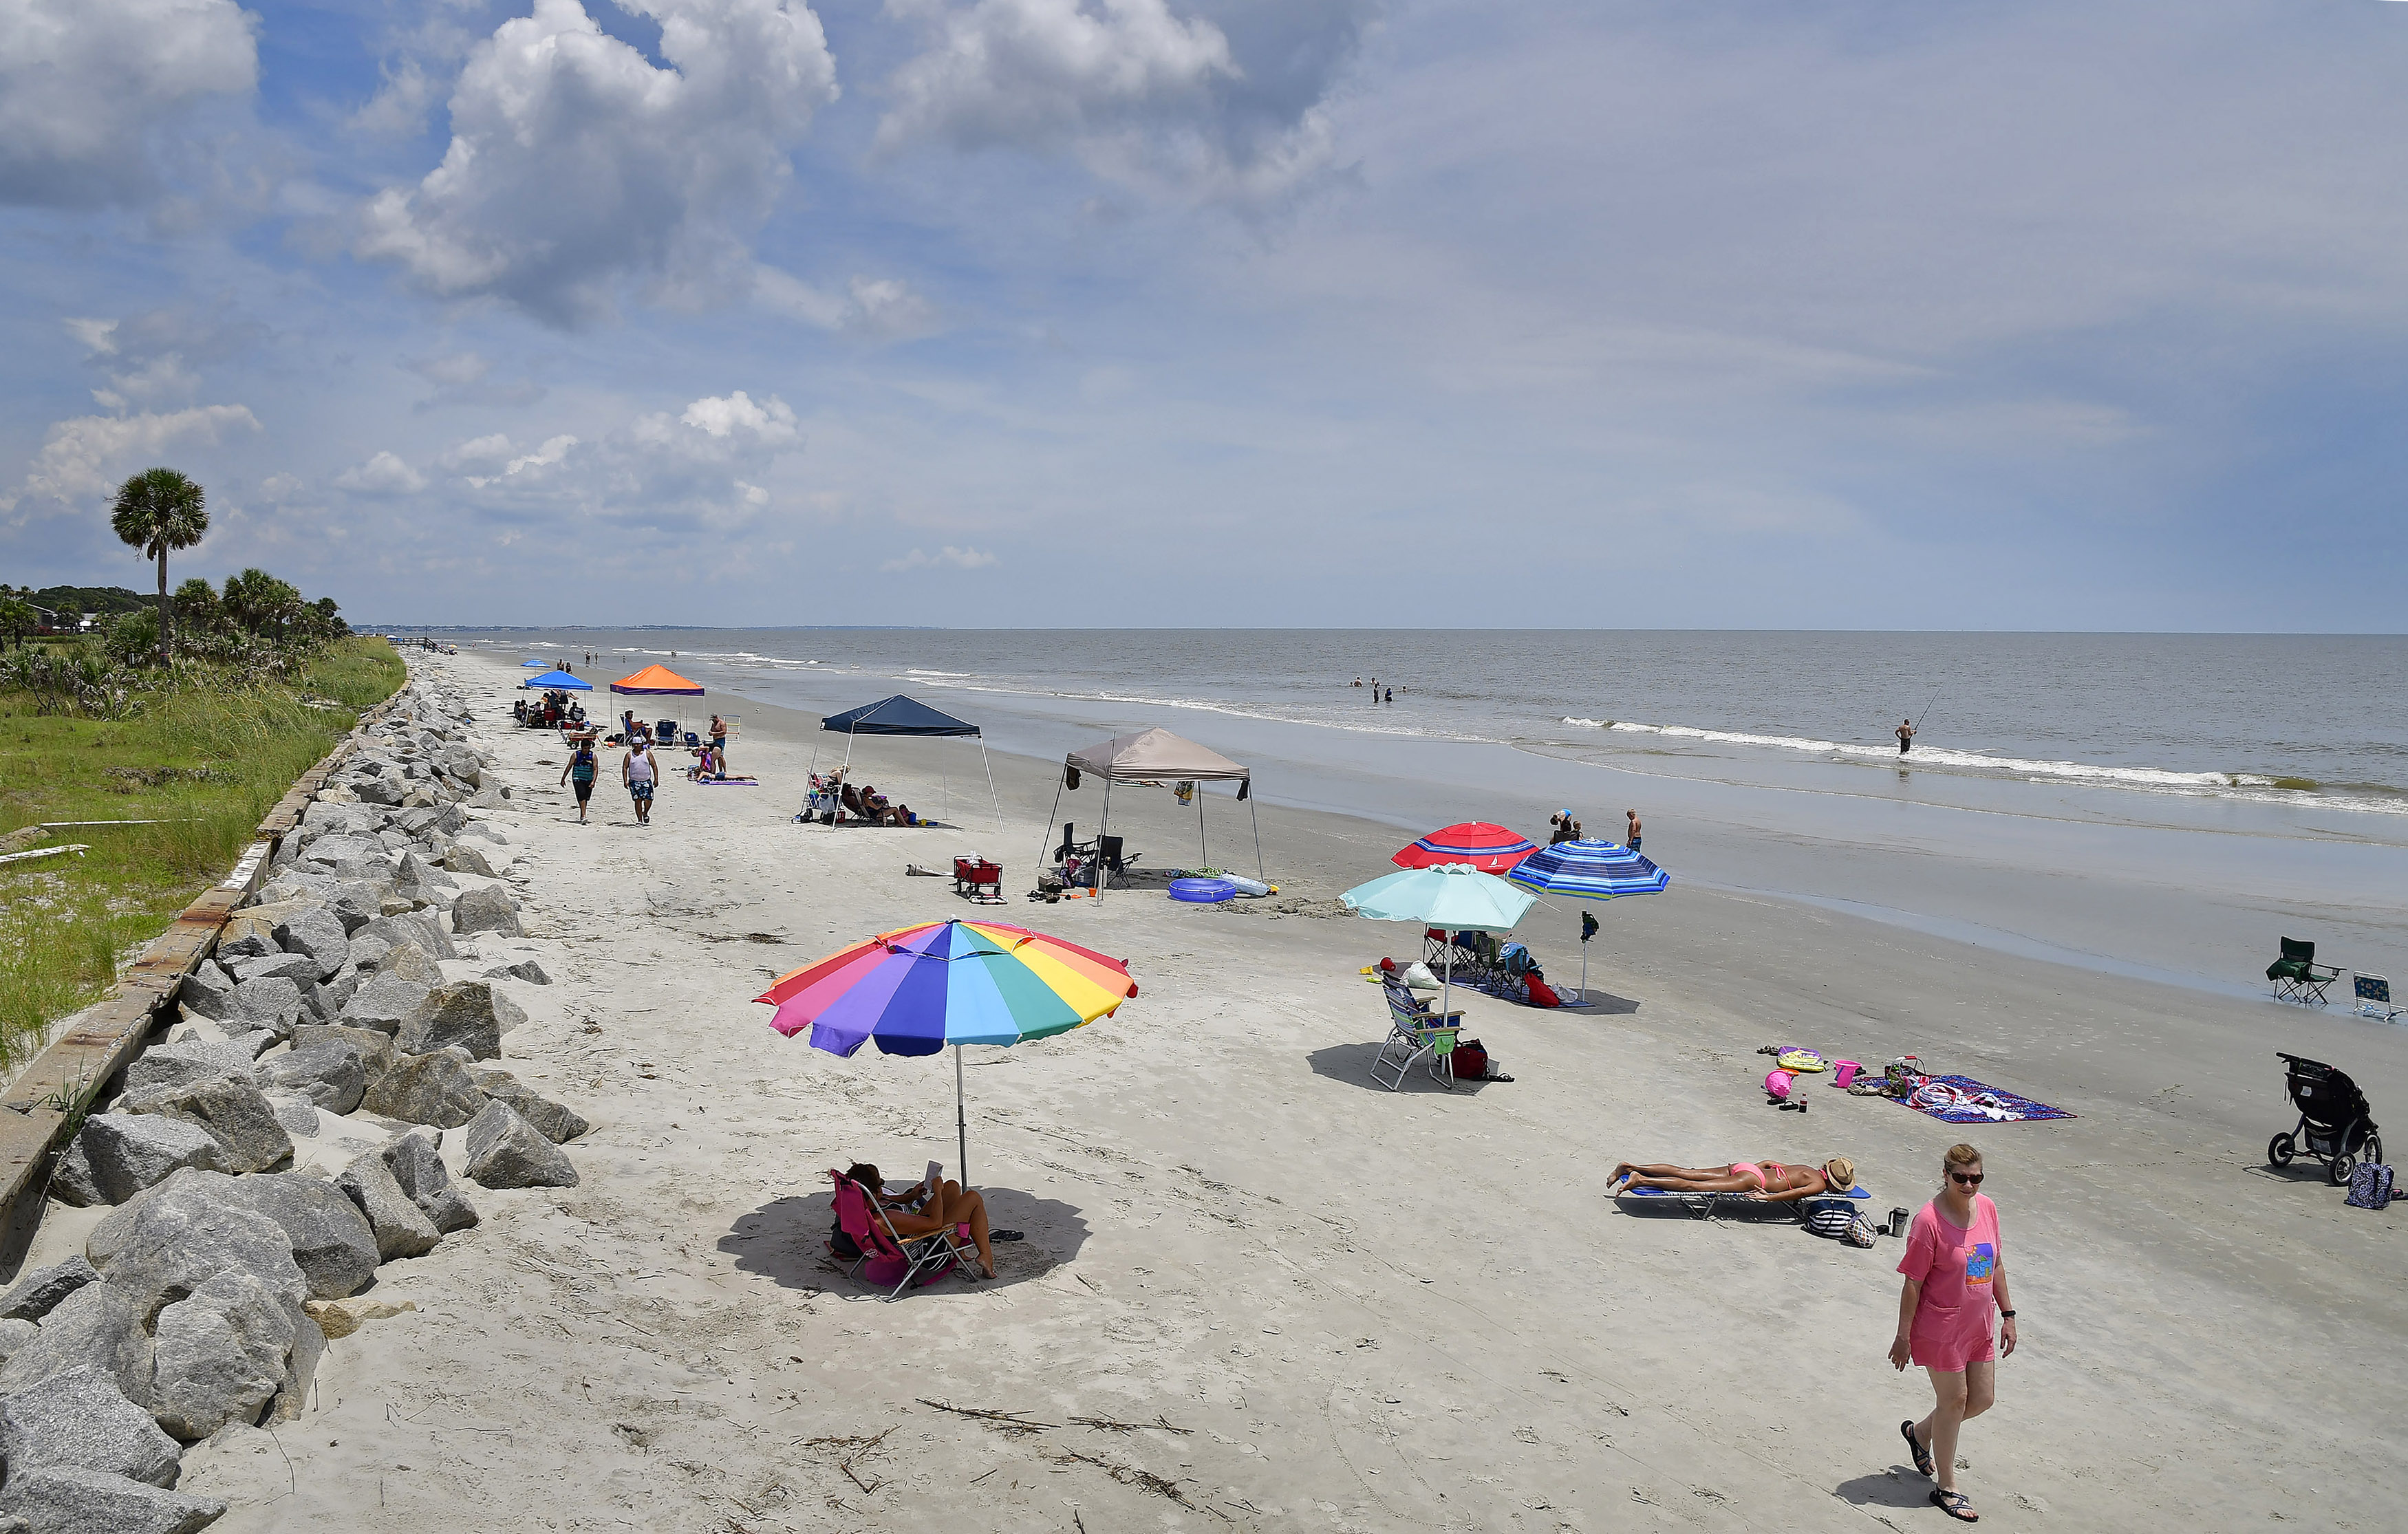 The beach at Jekyll Island, Georgia, is an attractive option for families because there are no high-rise hotels and very little commercialization. Photo by David Tulis